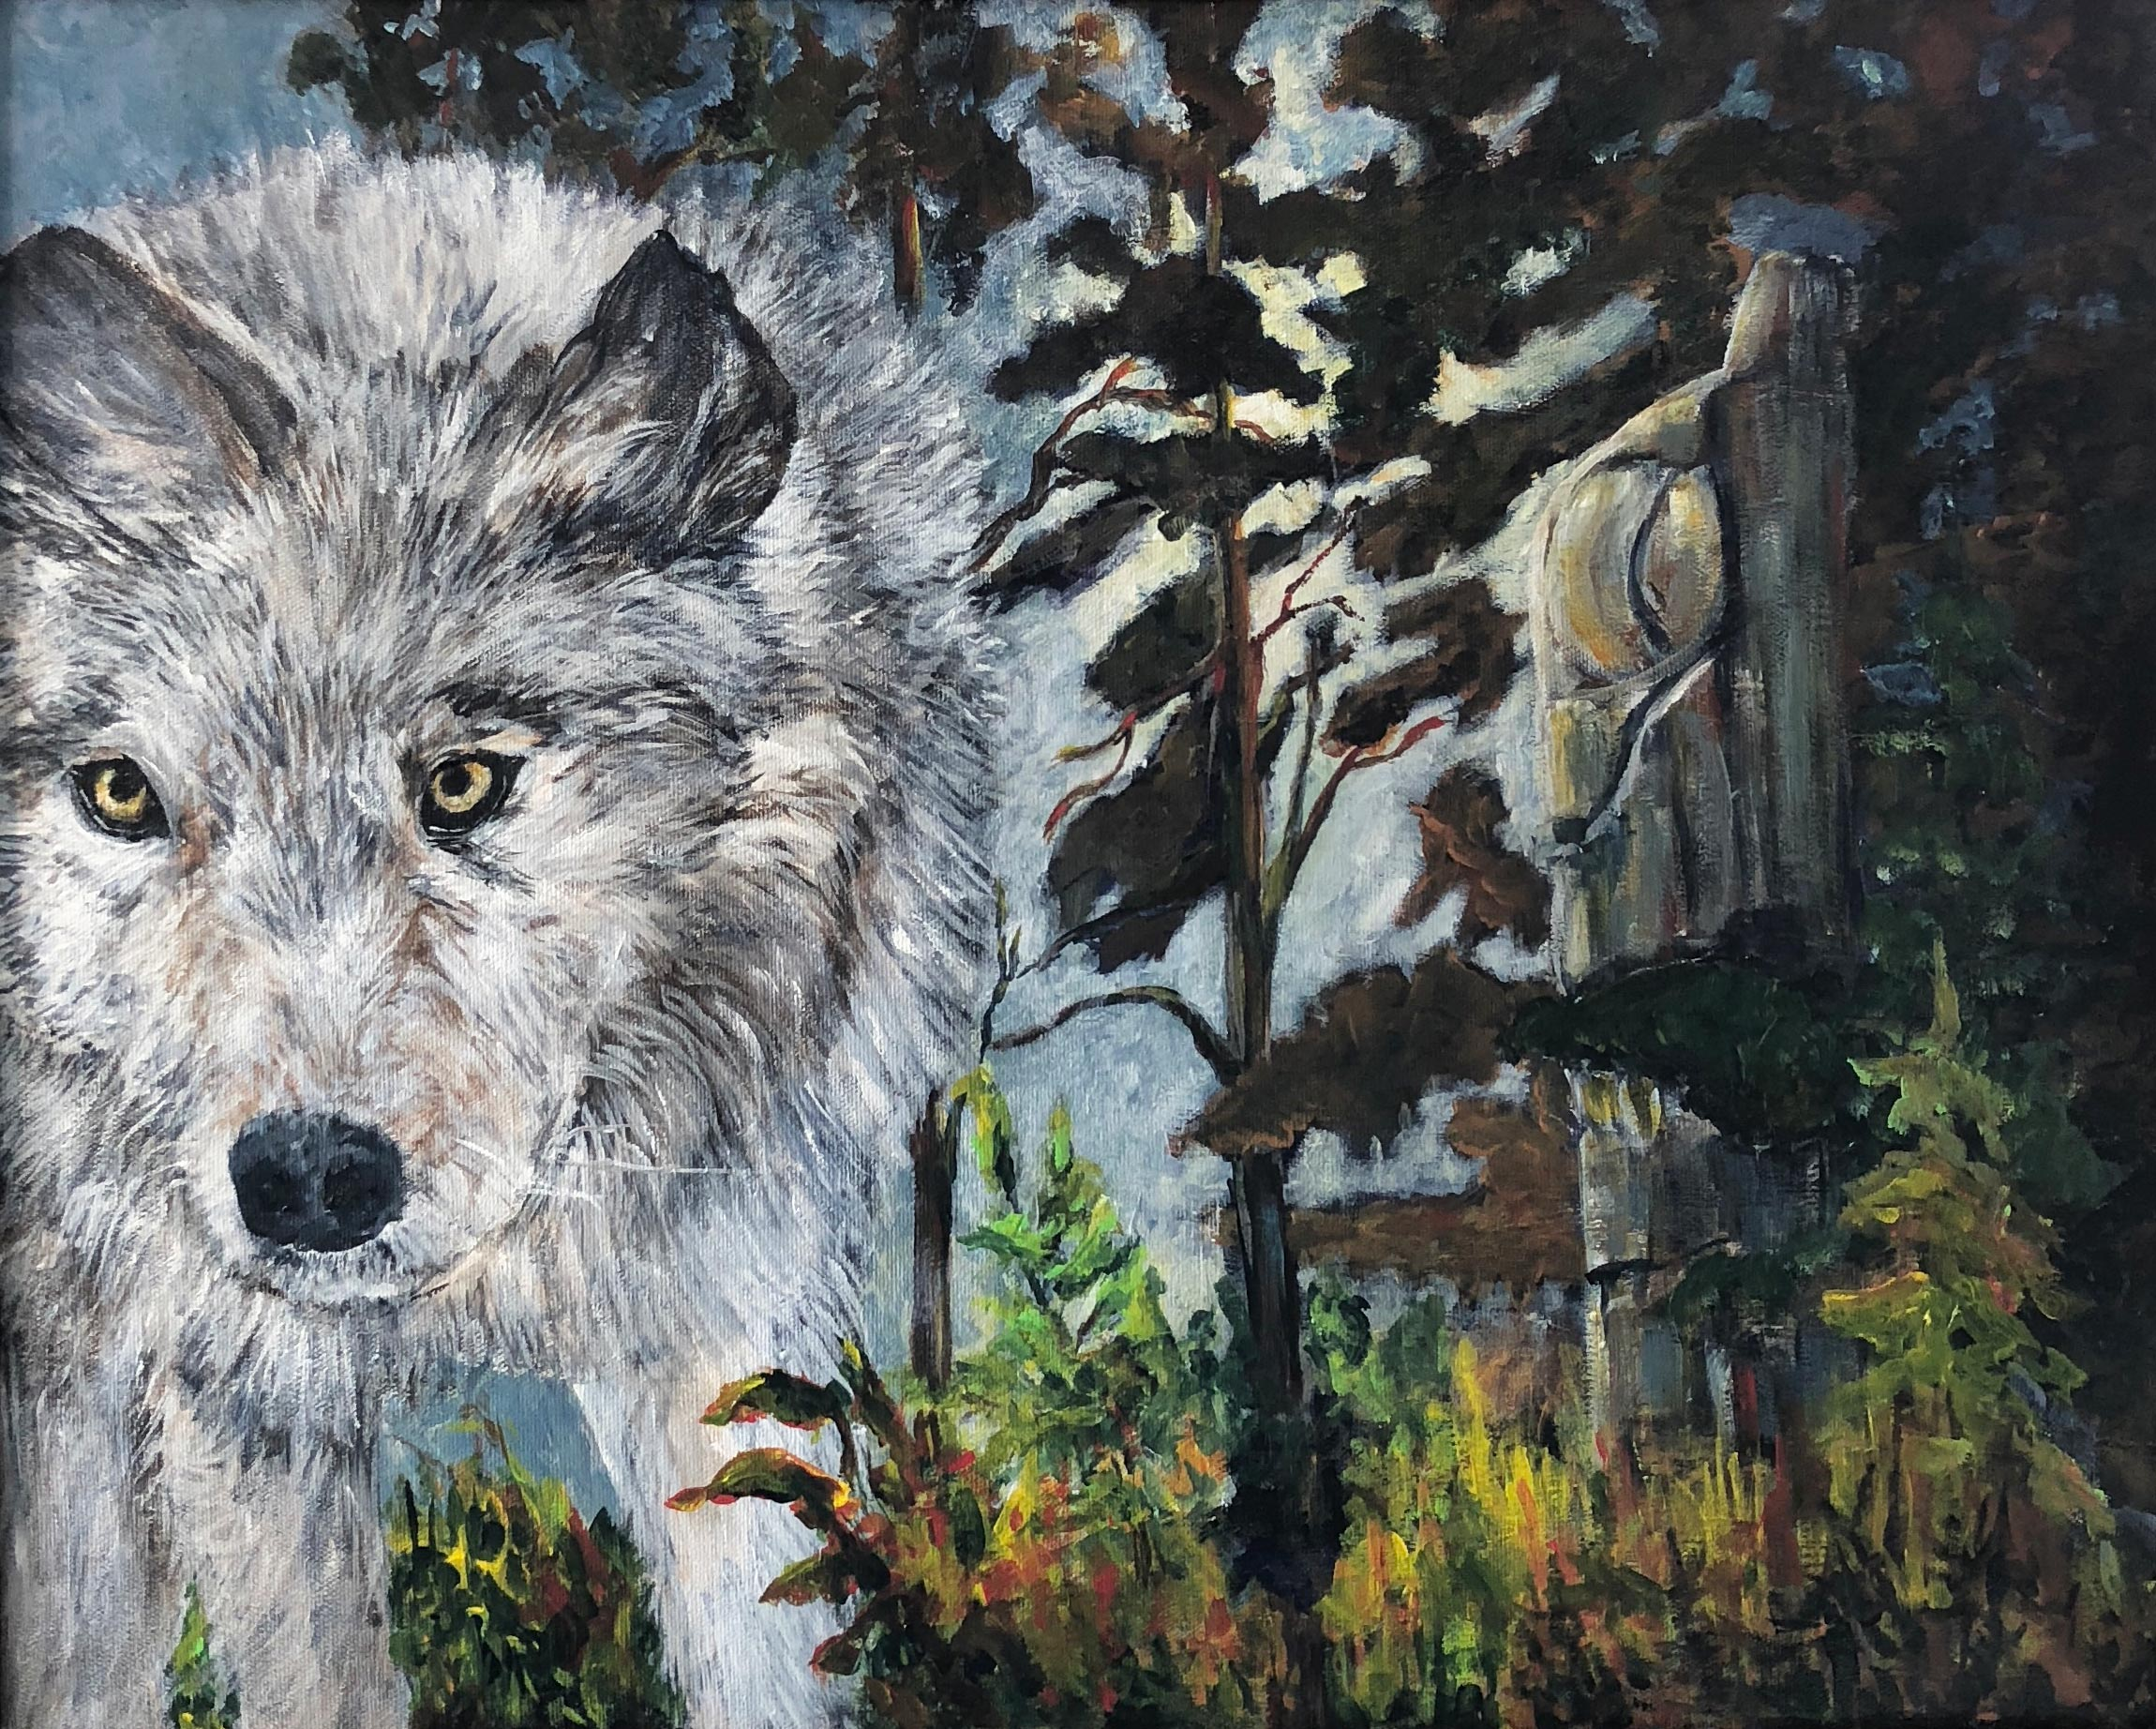 Spirit Wolf, Deb Peters, Painter